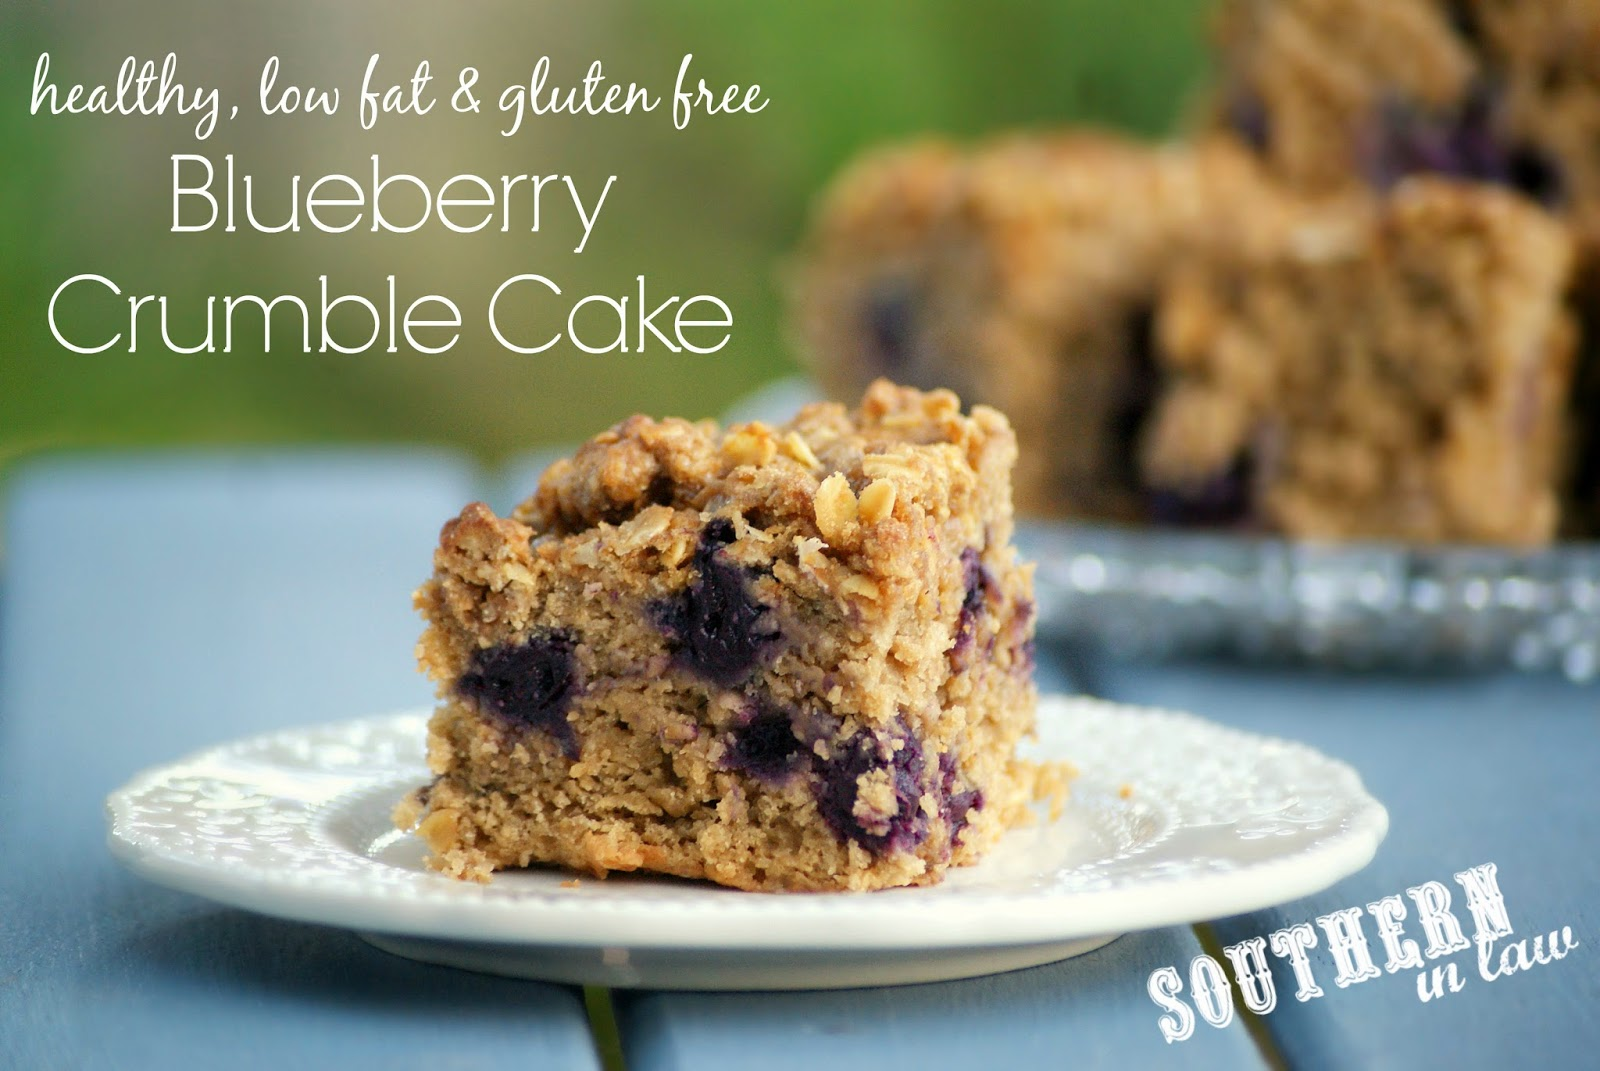 Gluten Free Blueberry Crumble Cake Recipe - gluten free, low fat, lower sugar, vegan, dairy free, egg free, healthy